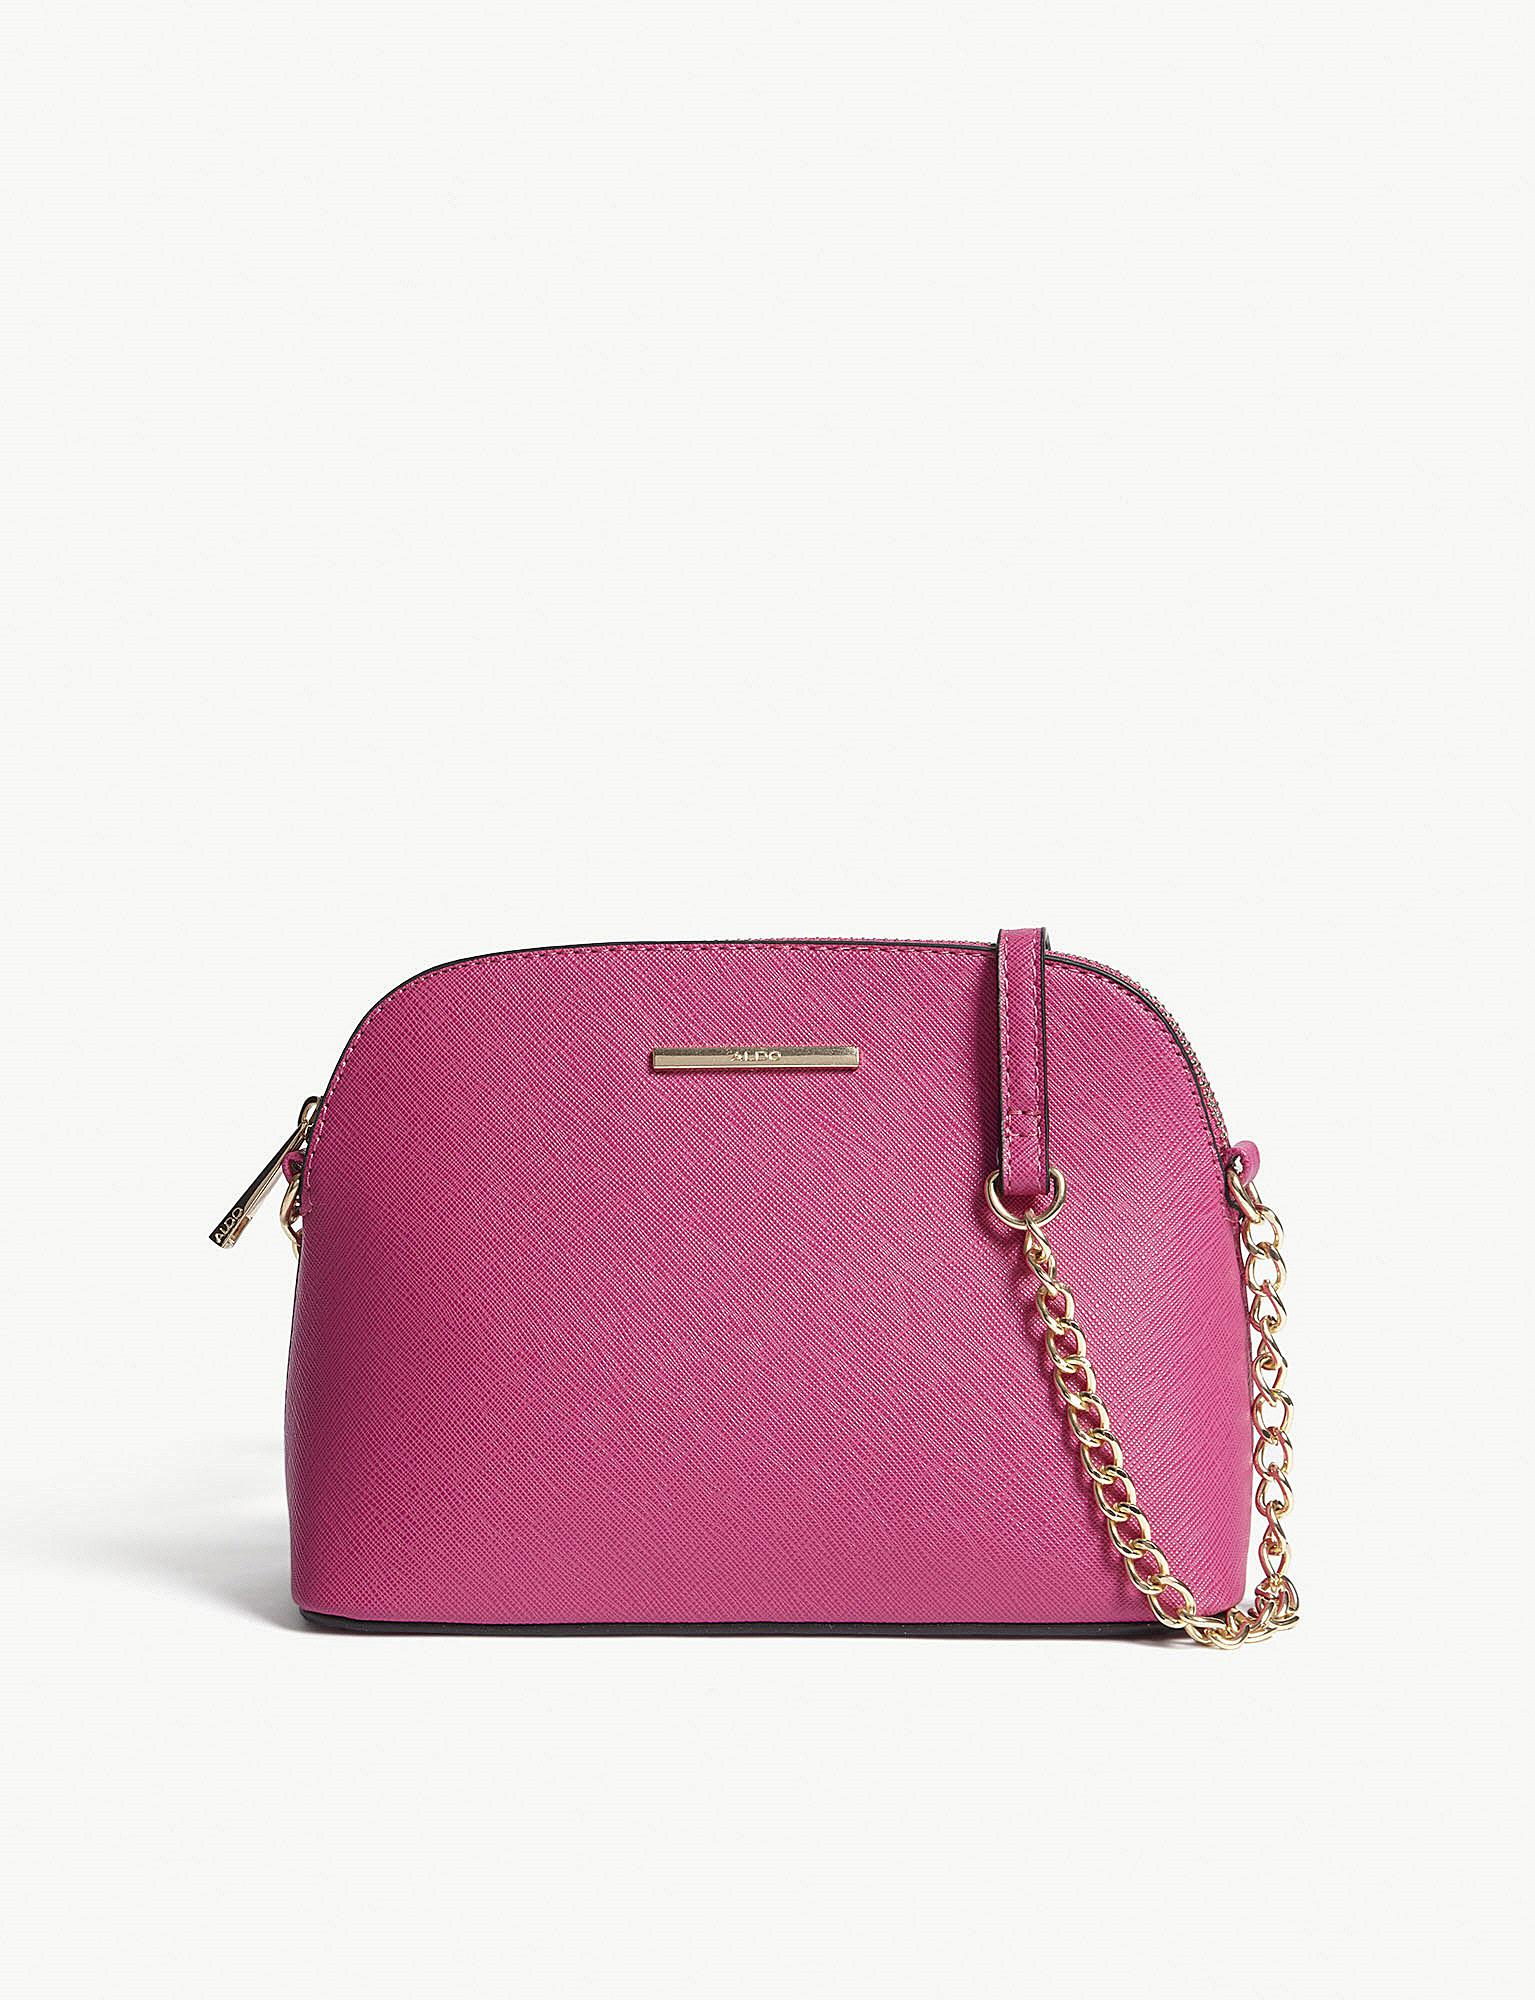 Lyst - ALDO Elroodie Cross-body Bag 61fd6df089819